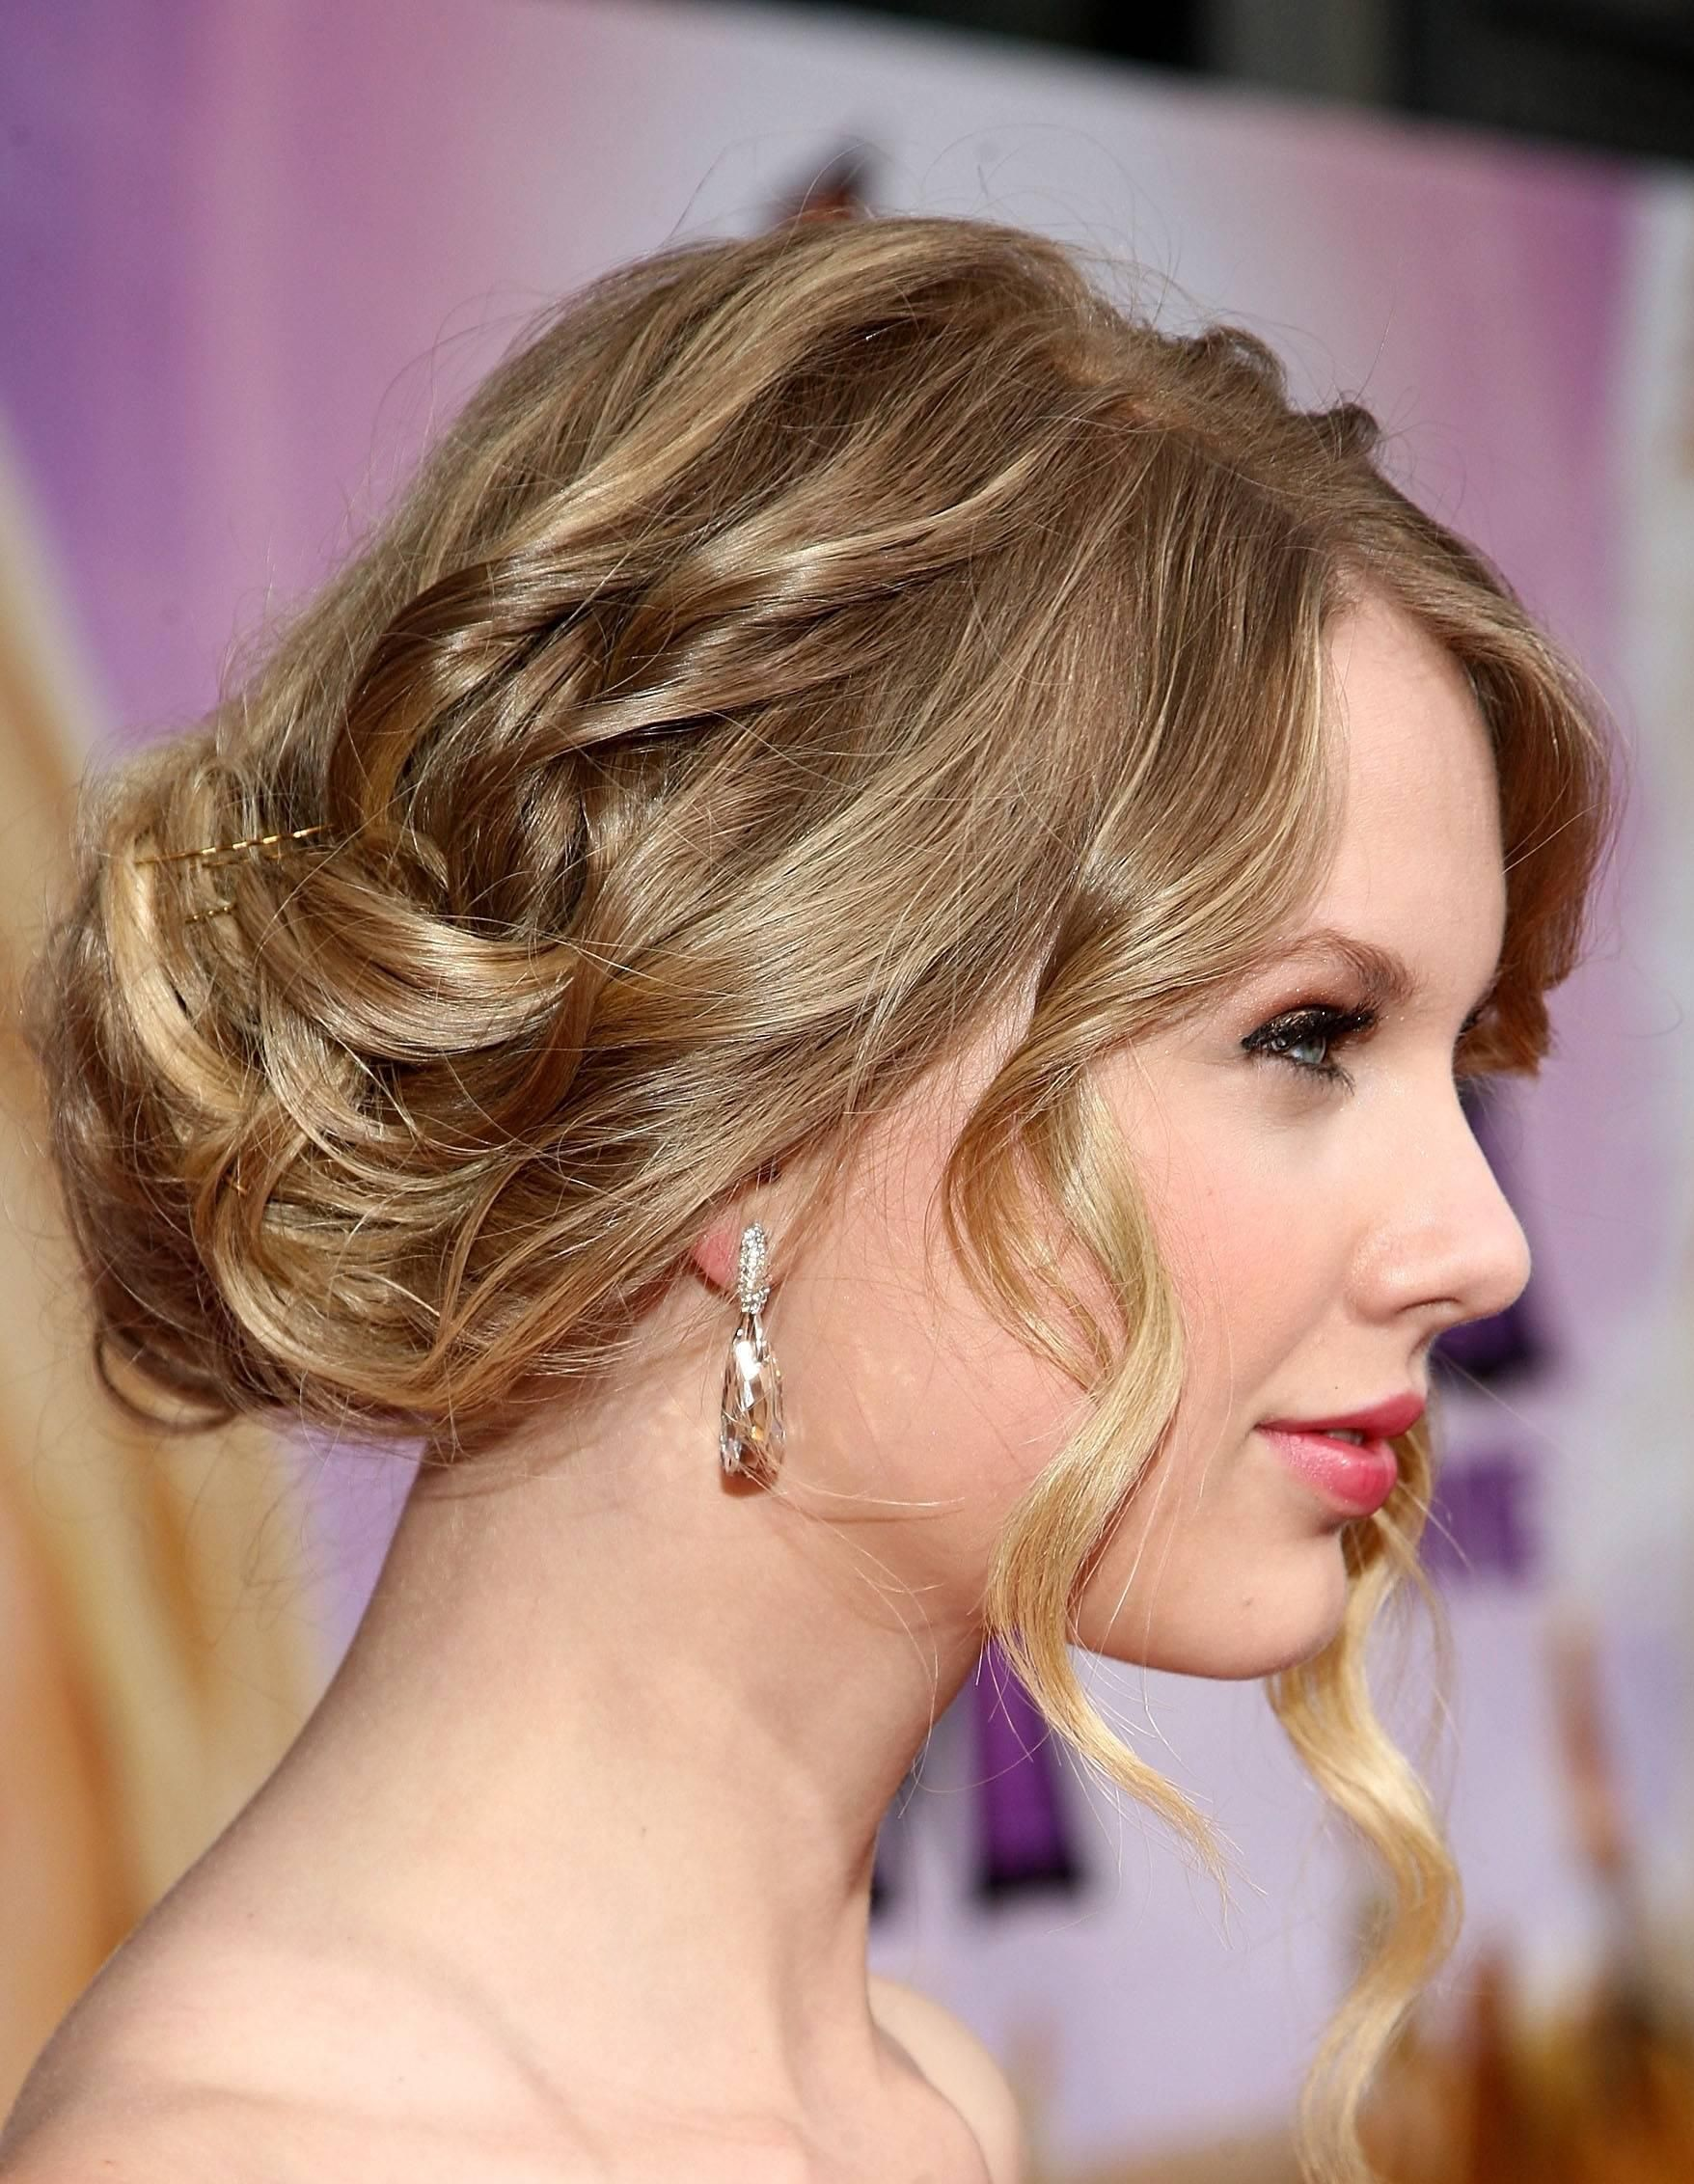 taylor swift celebrity hairstyles http://besthairstylesdesign